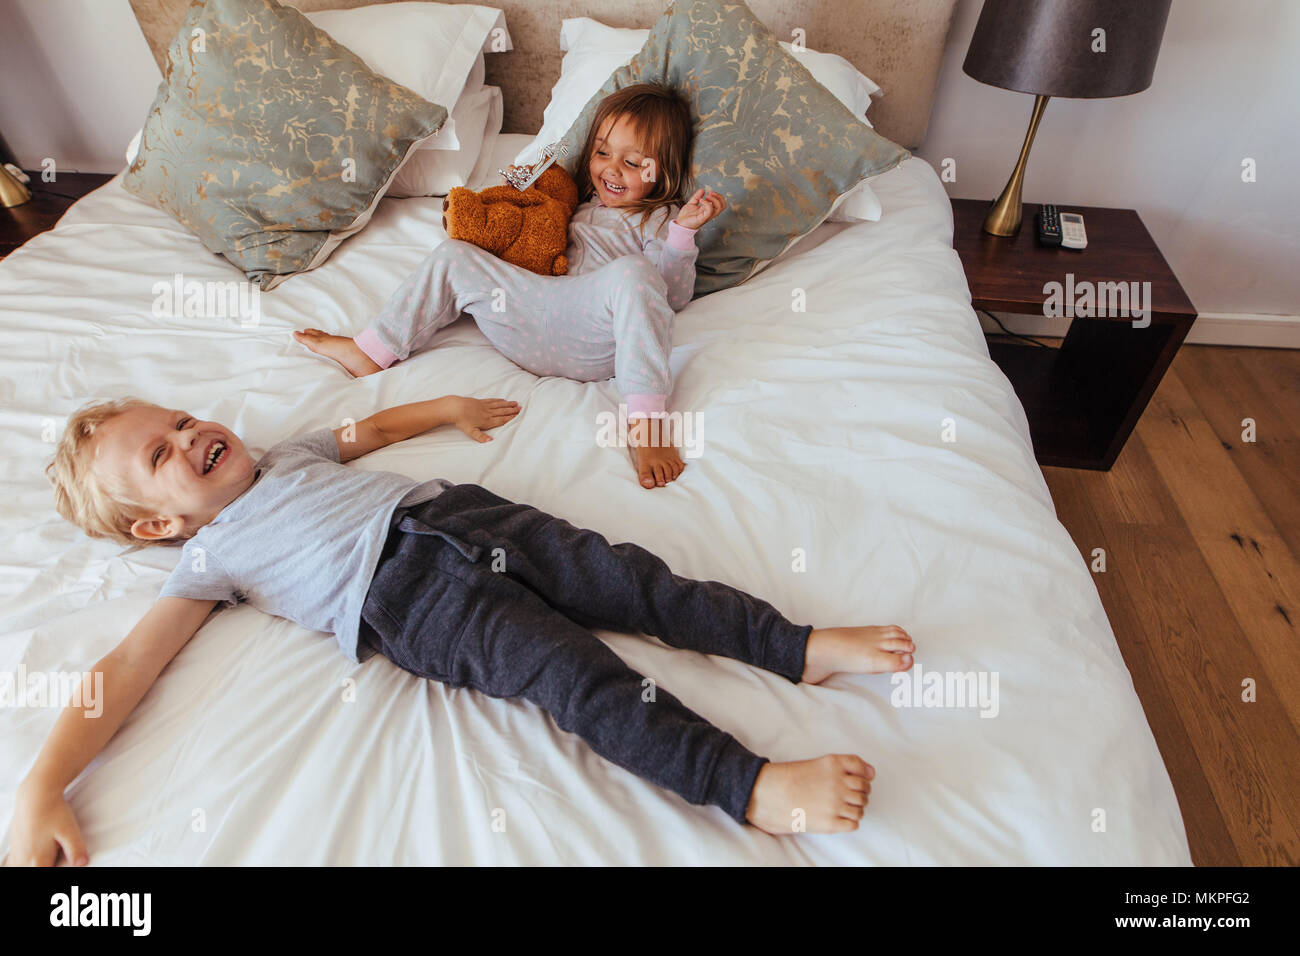 Little boy lying on bed with her sister sitting by holding a teddy bear smiling. Joyful little children playing in bedroom. - Stock Image